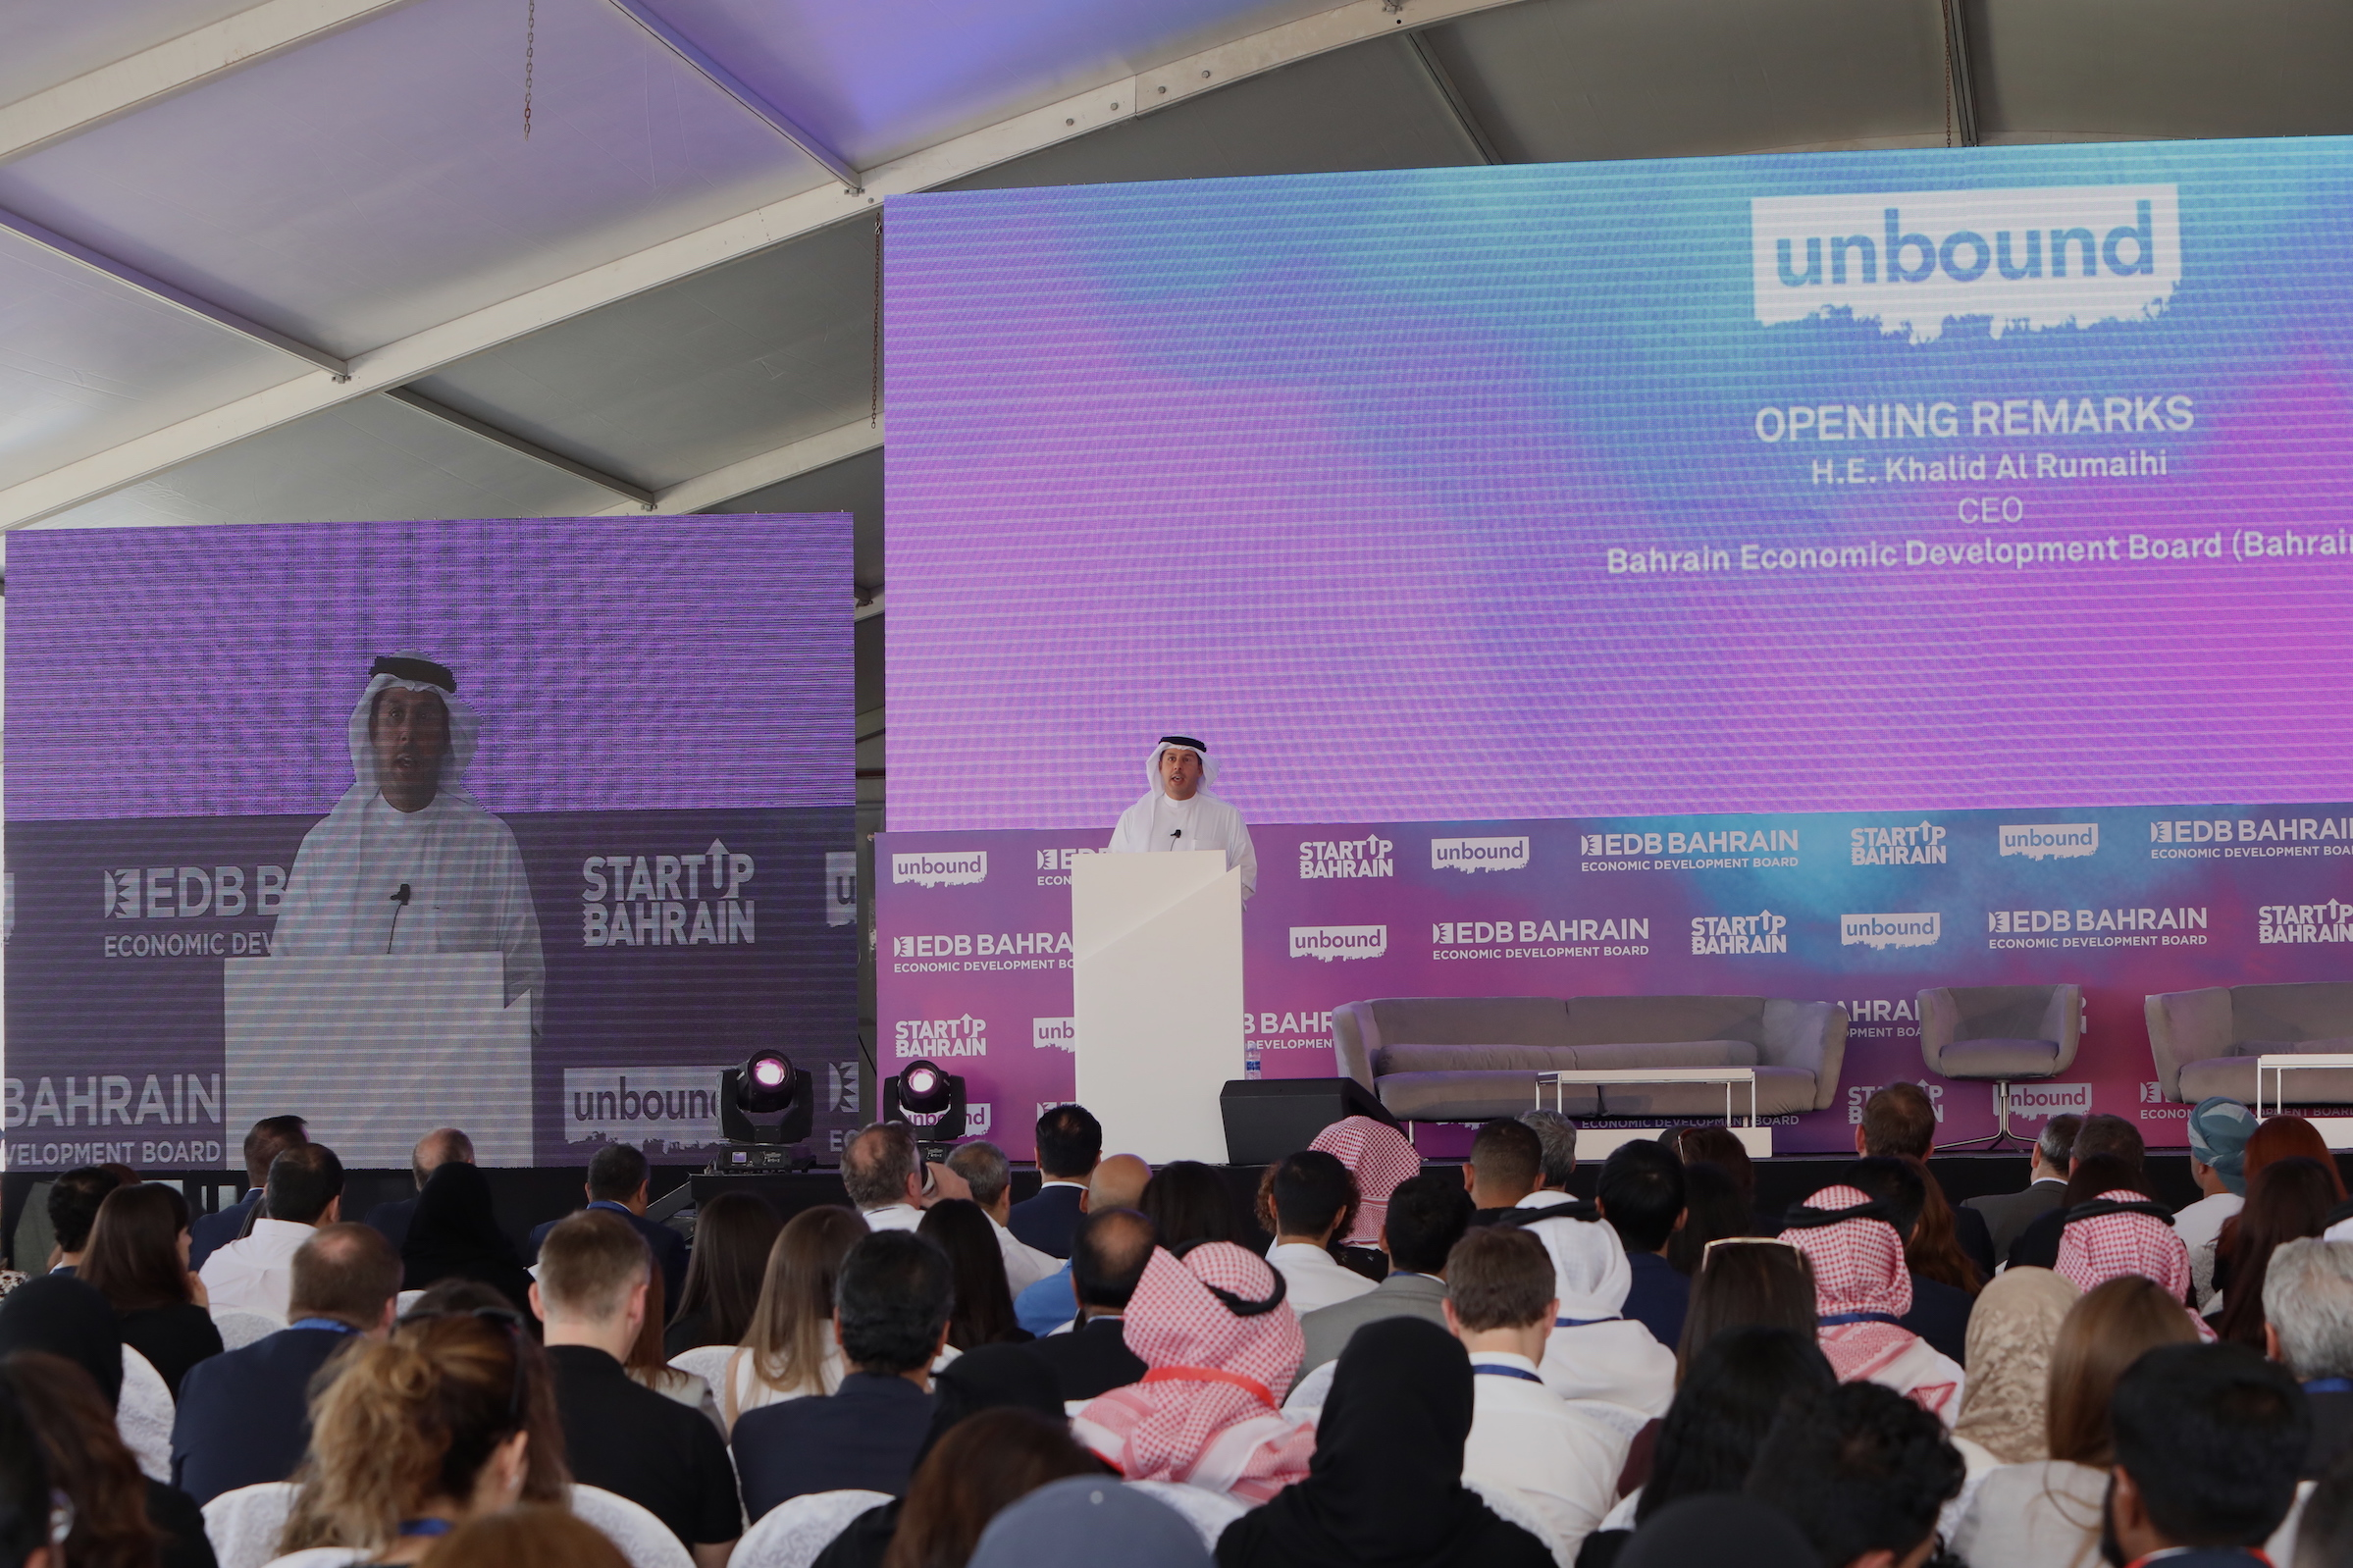 The much-anticipated StartUp Bahrain Week 2018 finally comes to an end, and it was a grand success